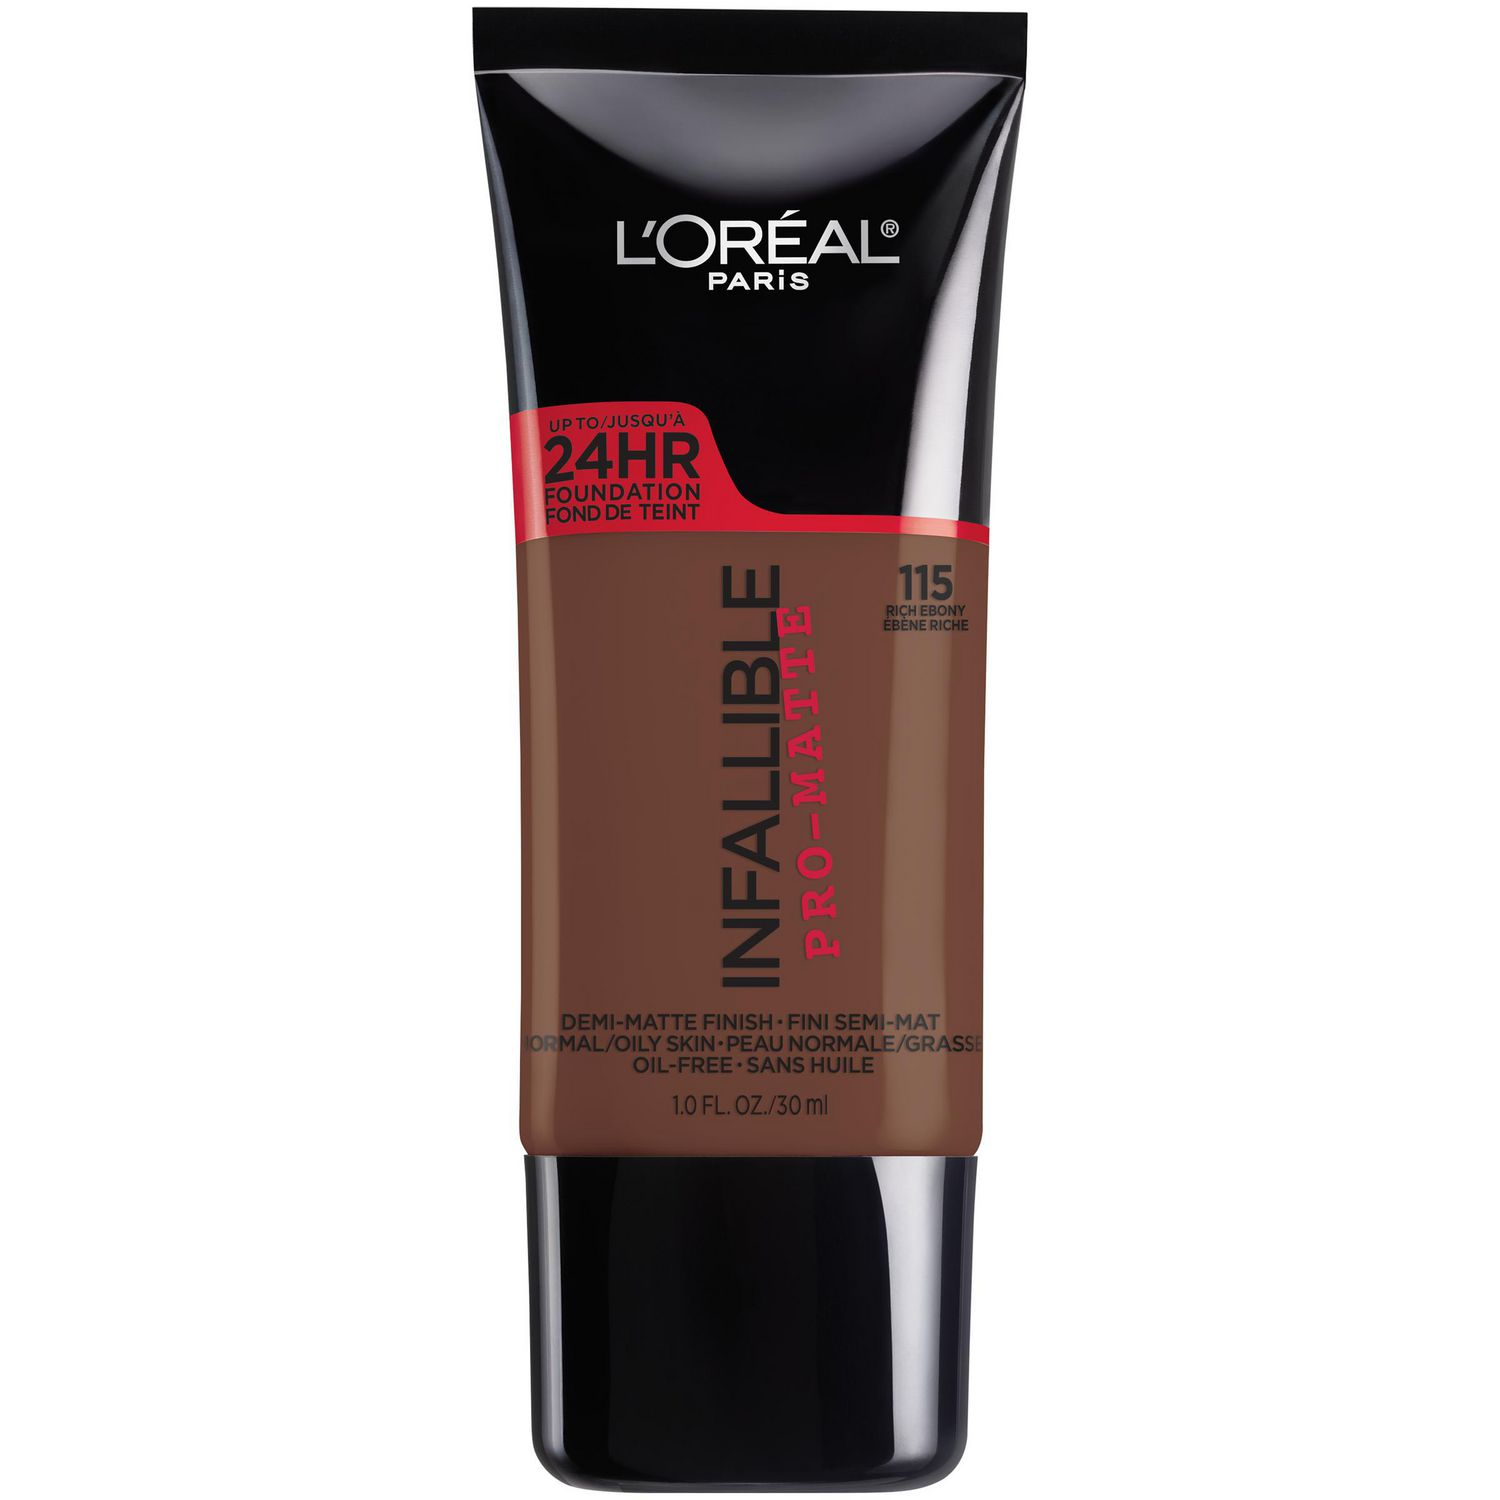 Loreal Paris Infallible Pro Matte Foundation 46 G 24hr Walmart Canada